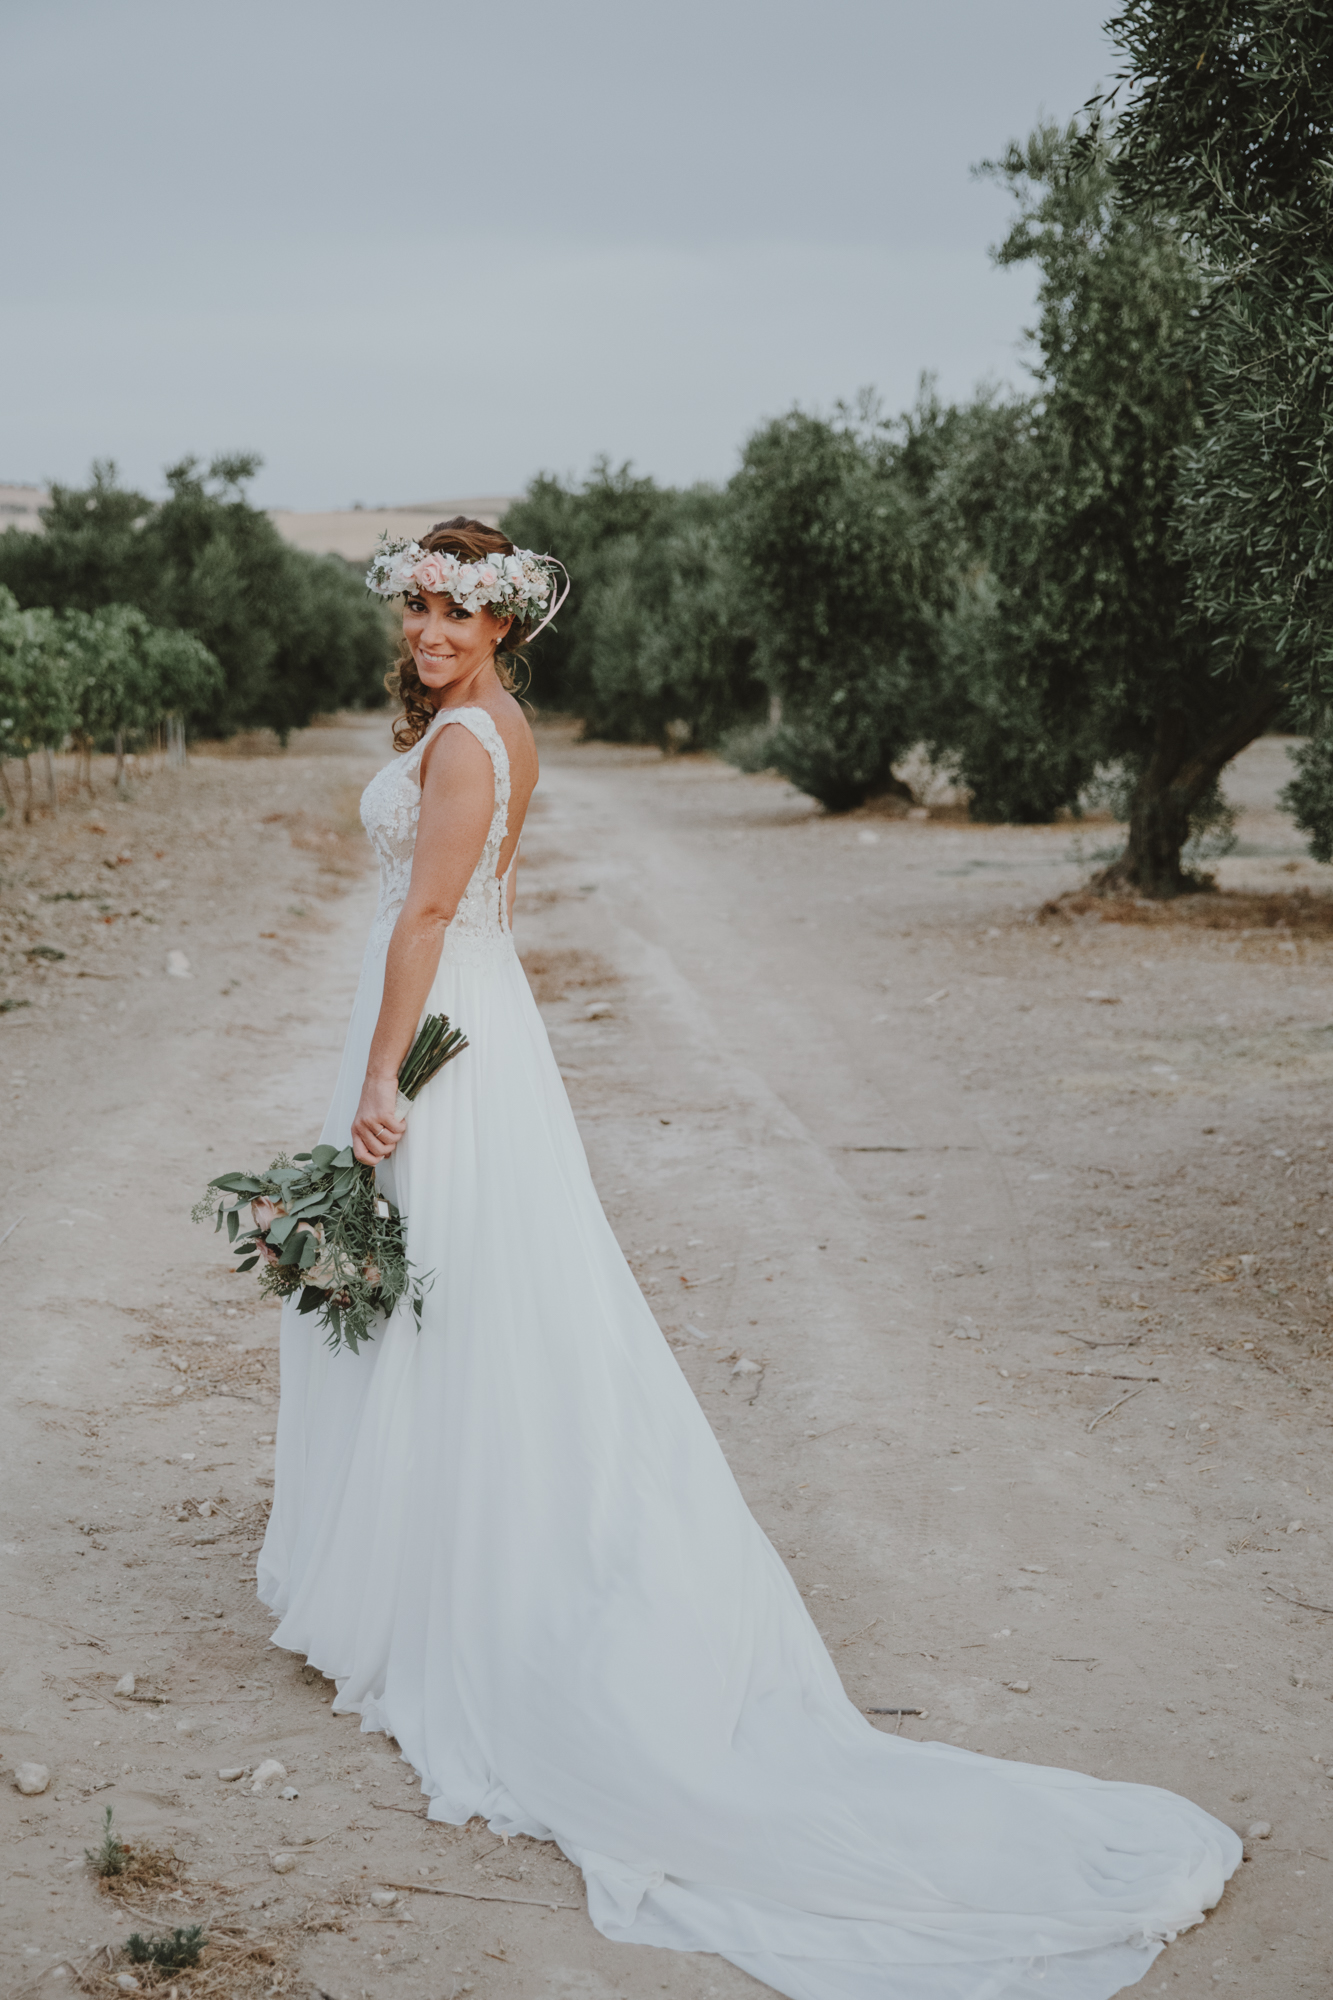 The Love Hunters - A bride amidst the olive groves